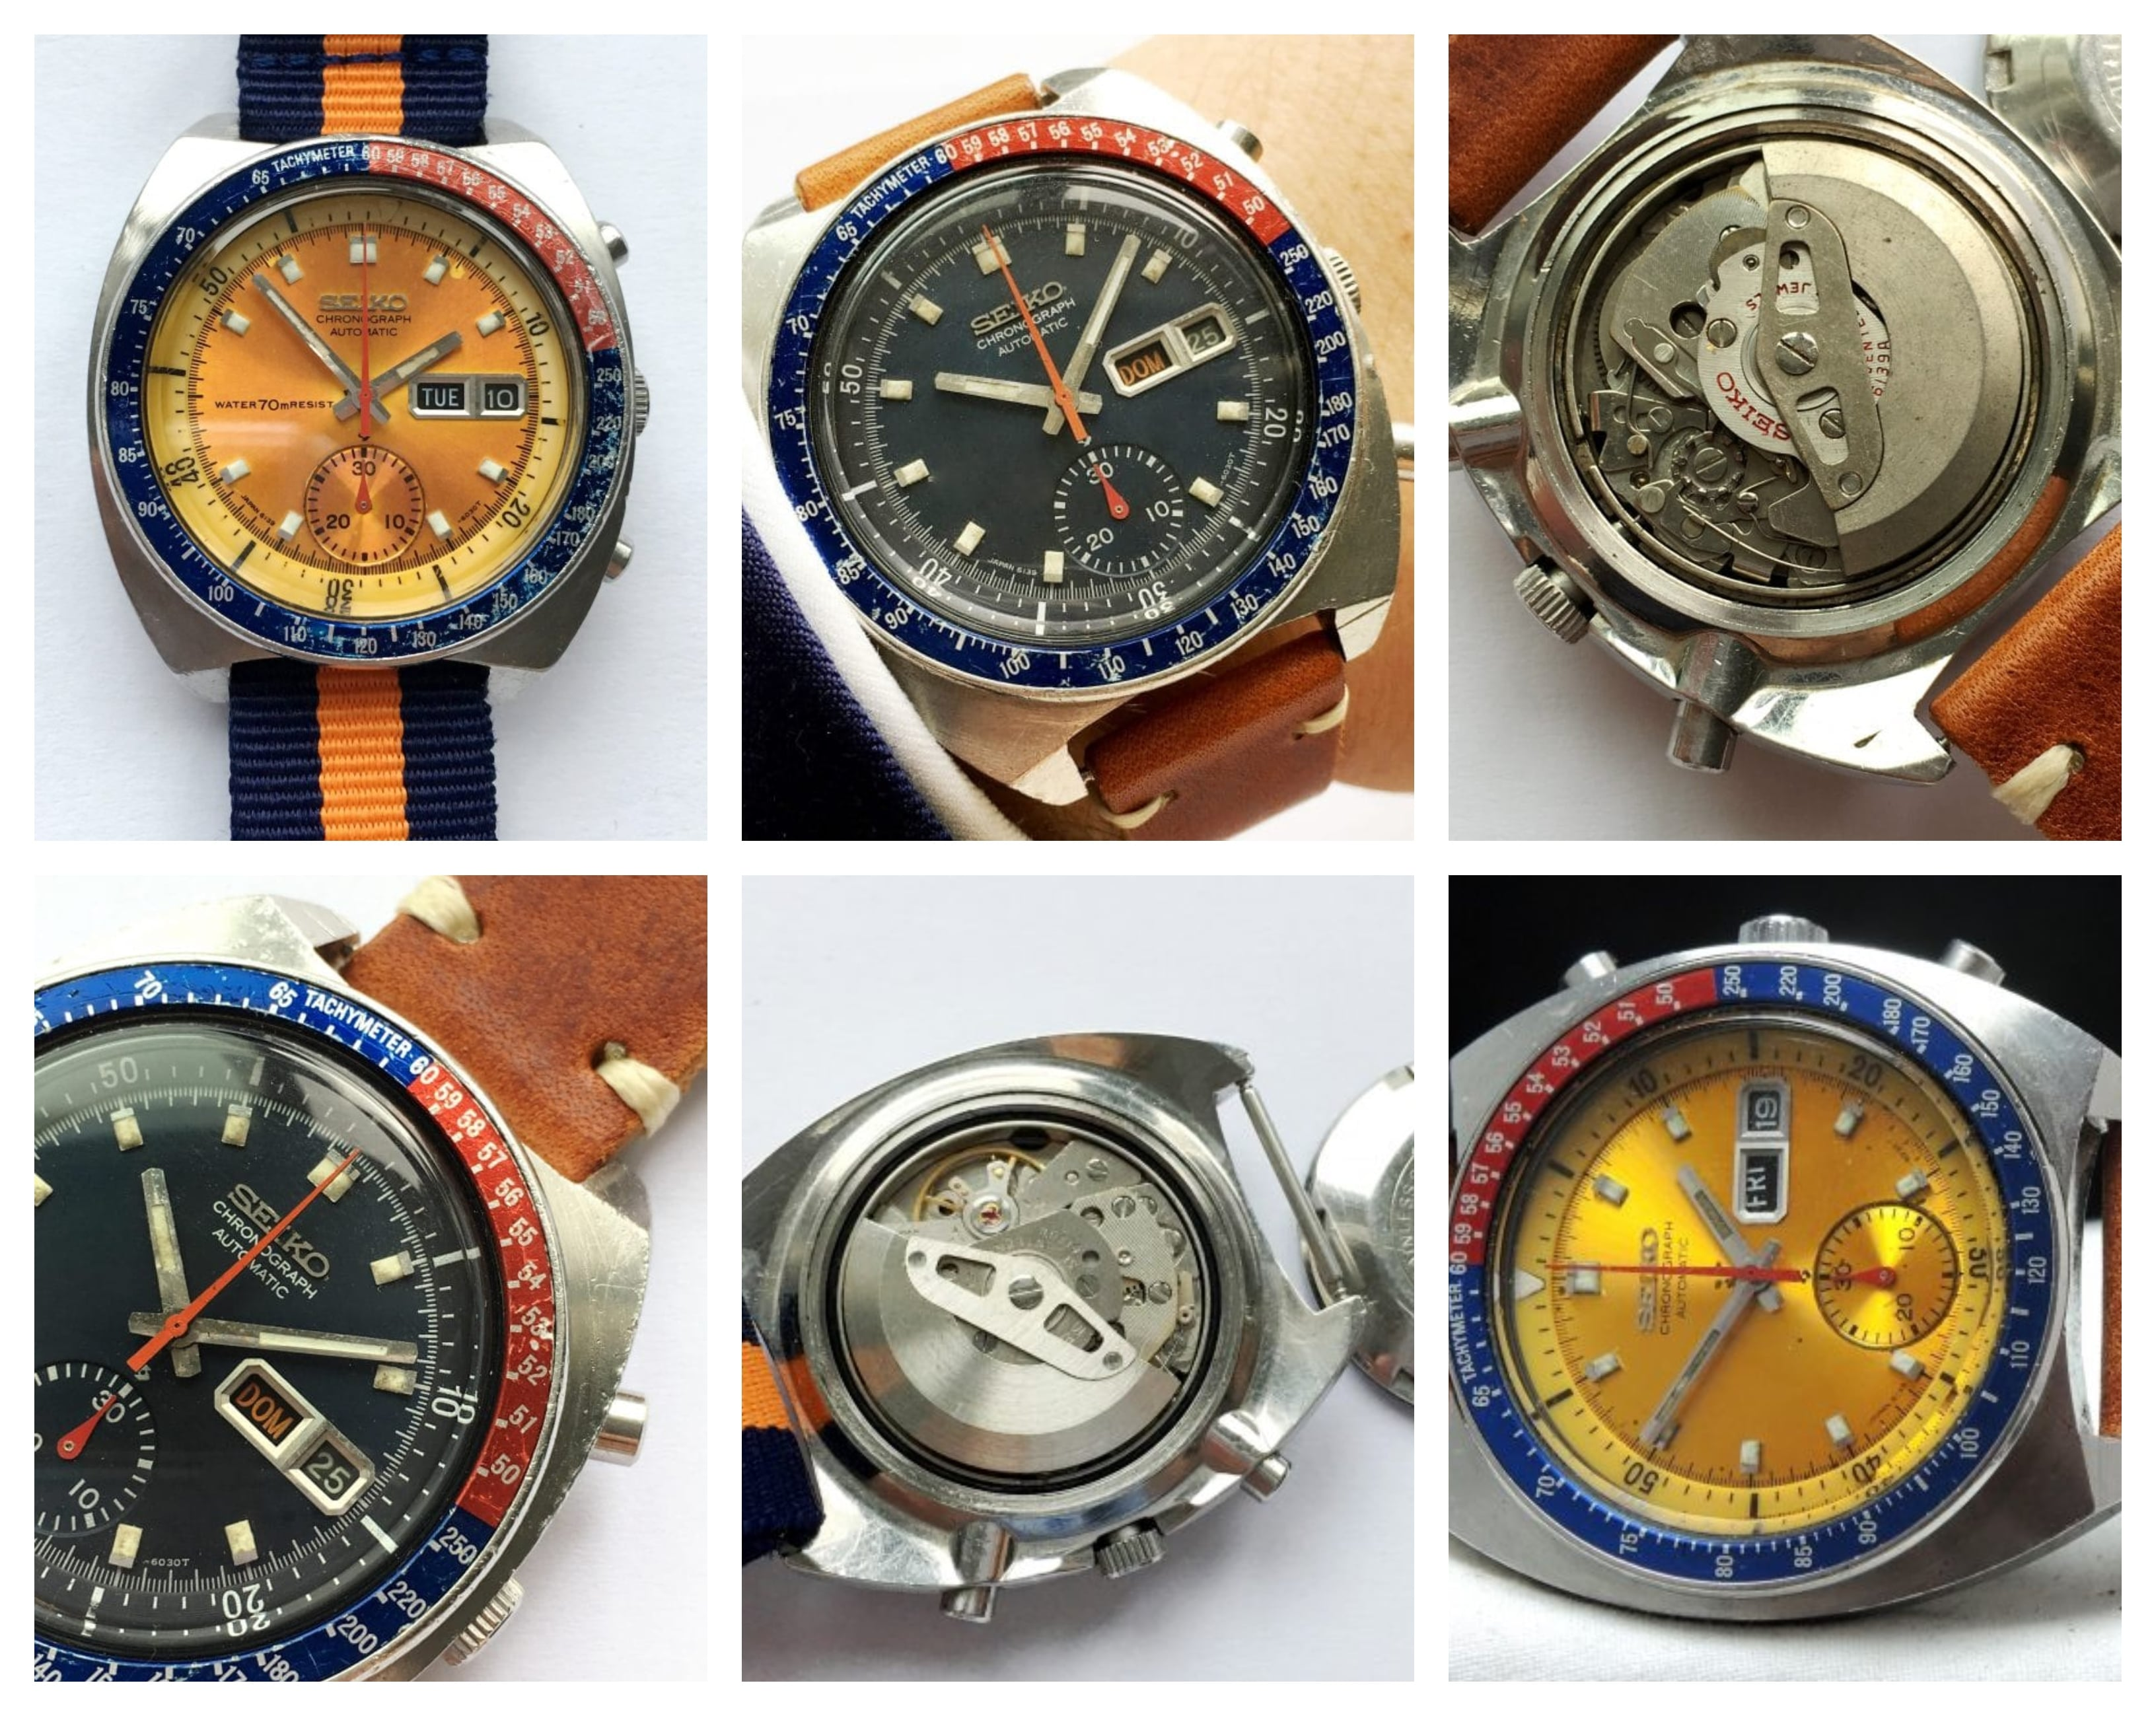 3 Vintage Chronographs Under €2.000!